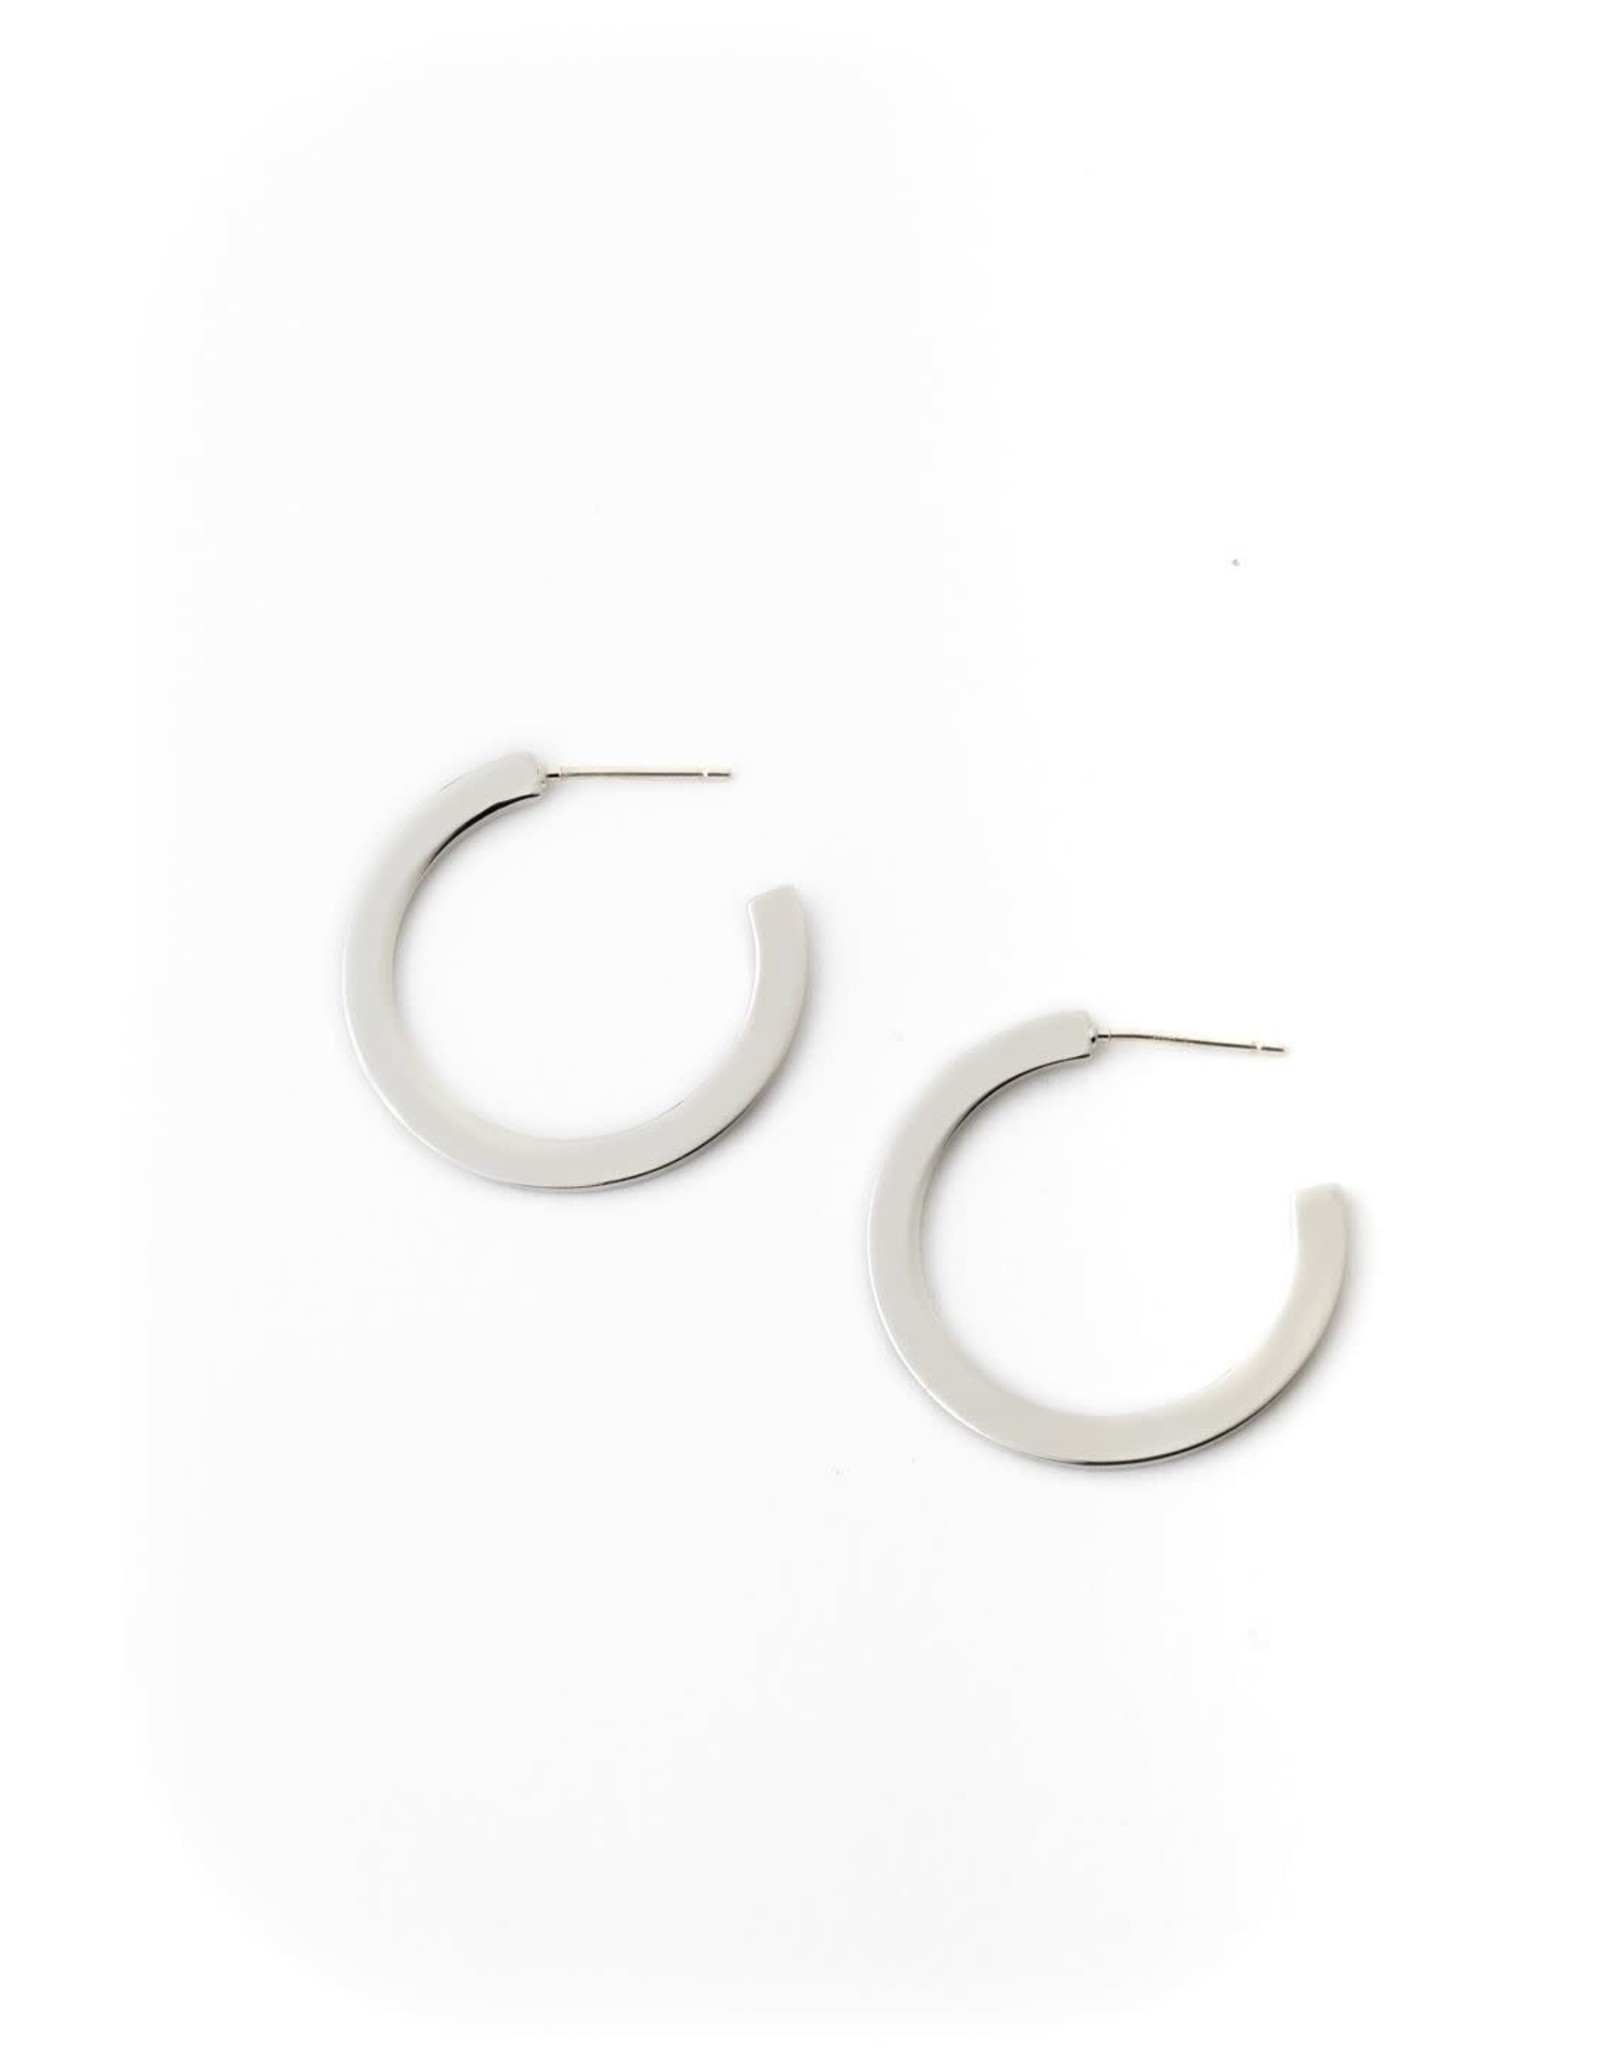 Lover's Tempo Gloria Lrg Hoop Earrings - Silver